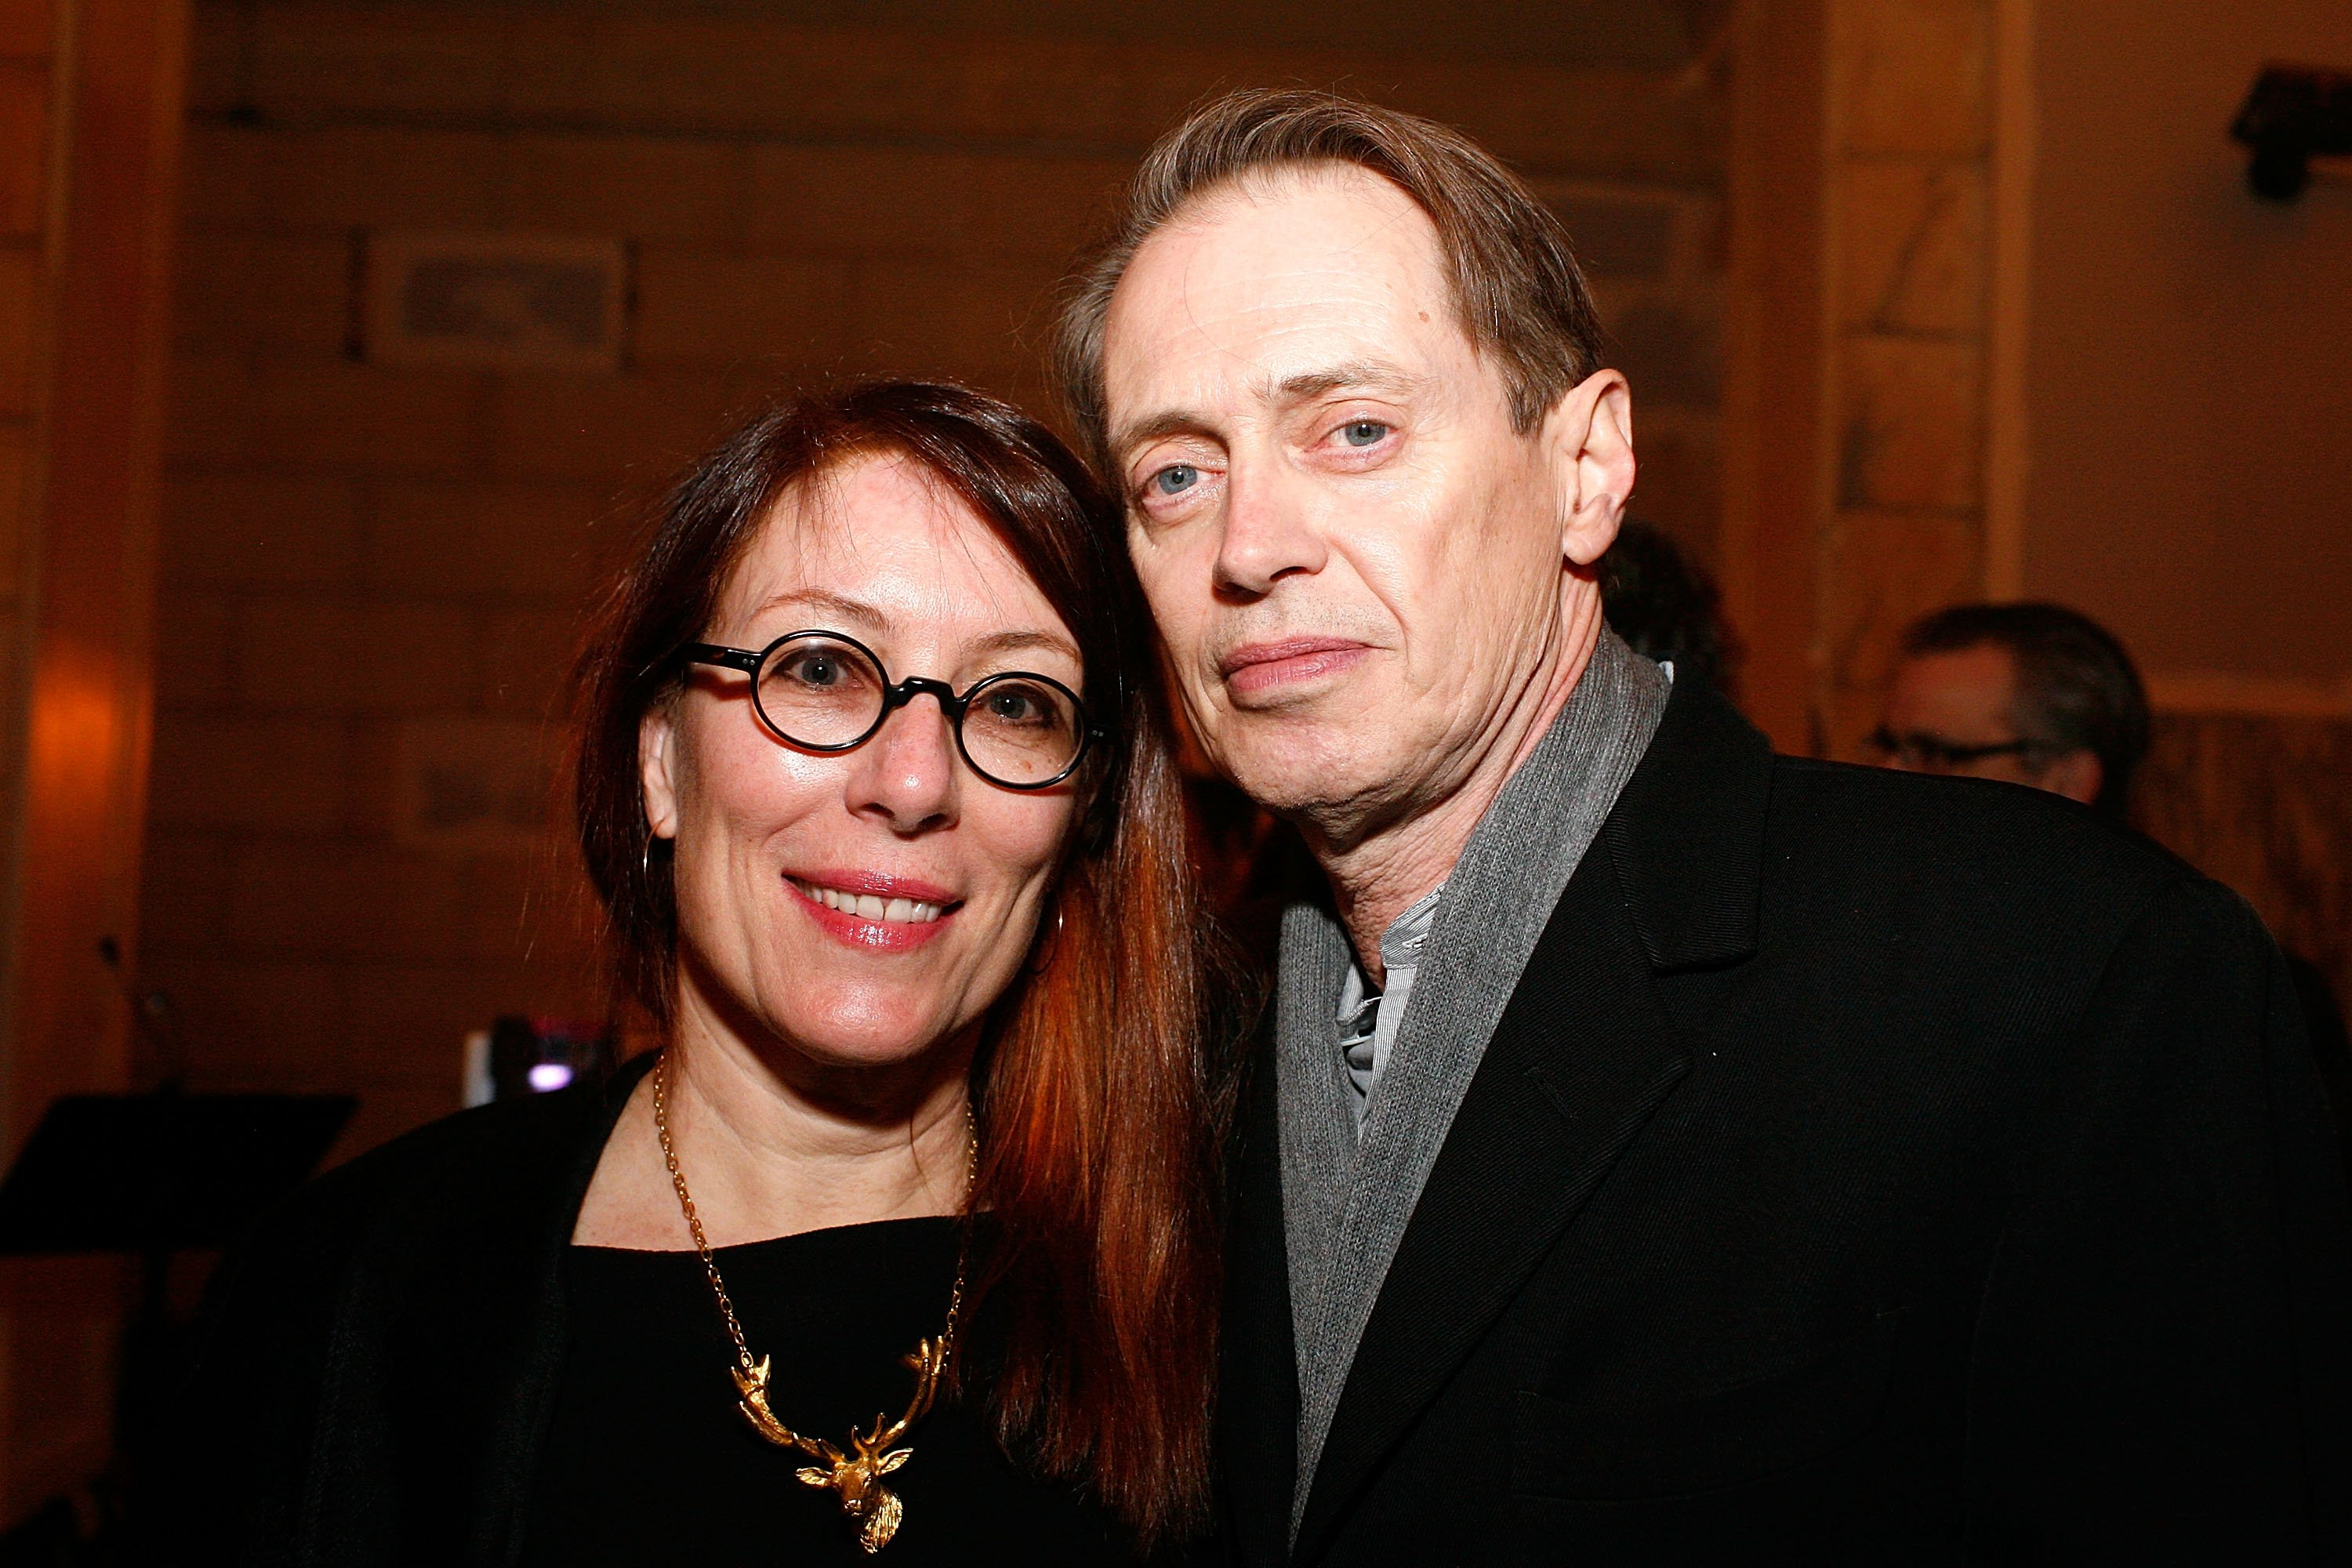 Jo Andres and Steve Buscemi attend the E. Sharp @ 60 Benefit Concert at the ISSUE Project Room on March 4, 2011 in the Brooklyn borough of New York City | Photo: GettyImages